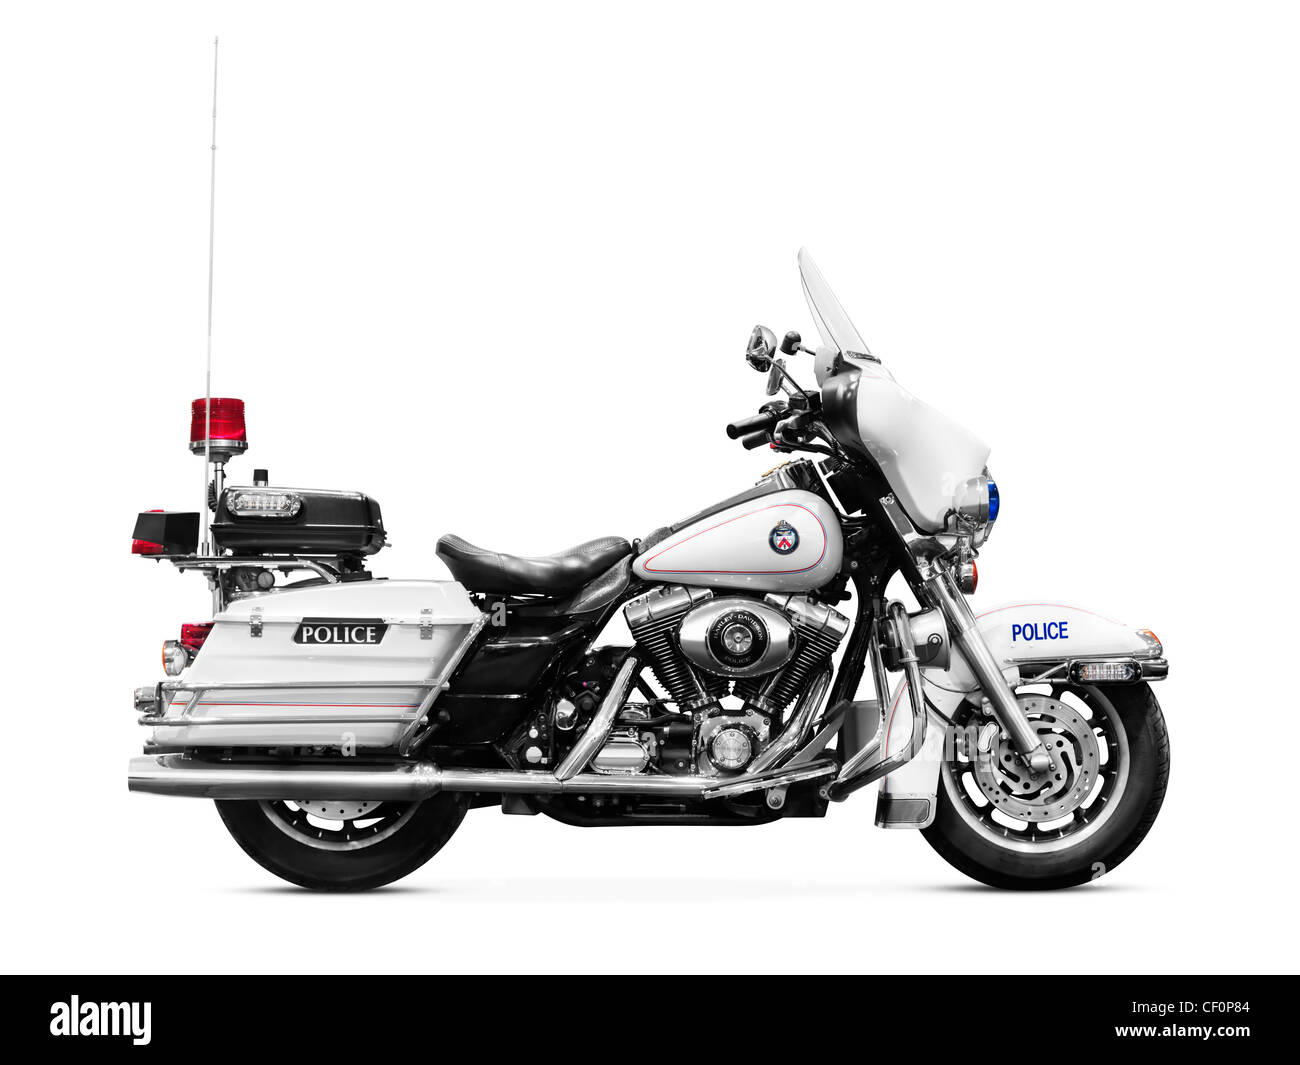 Police motorbike Harley Davidson FLHTP side view isolated on white background - Stock Image